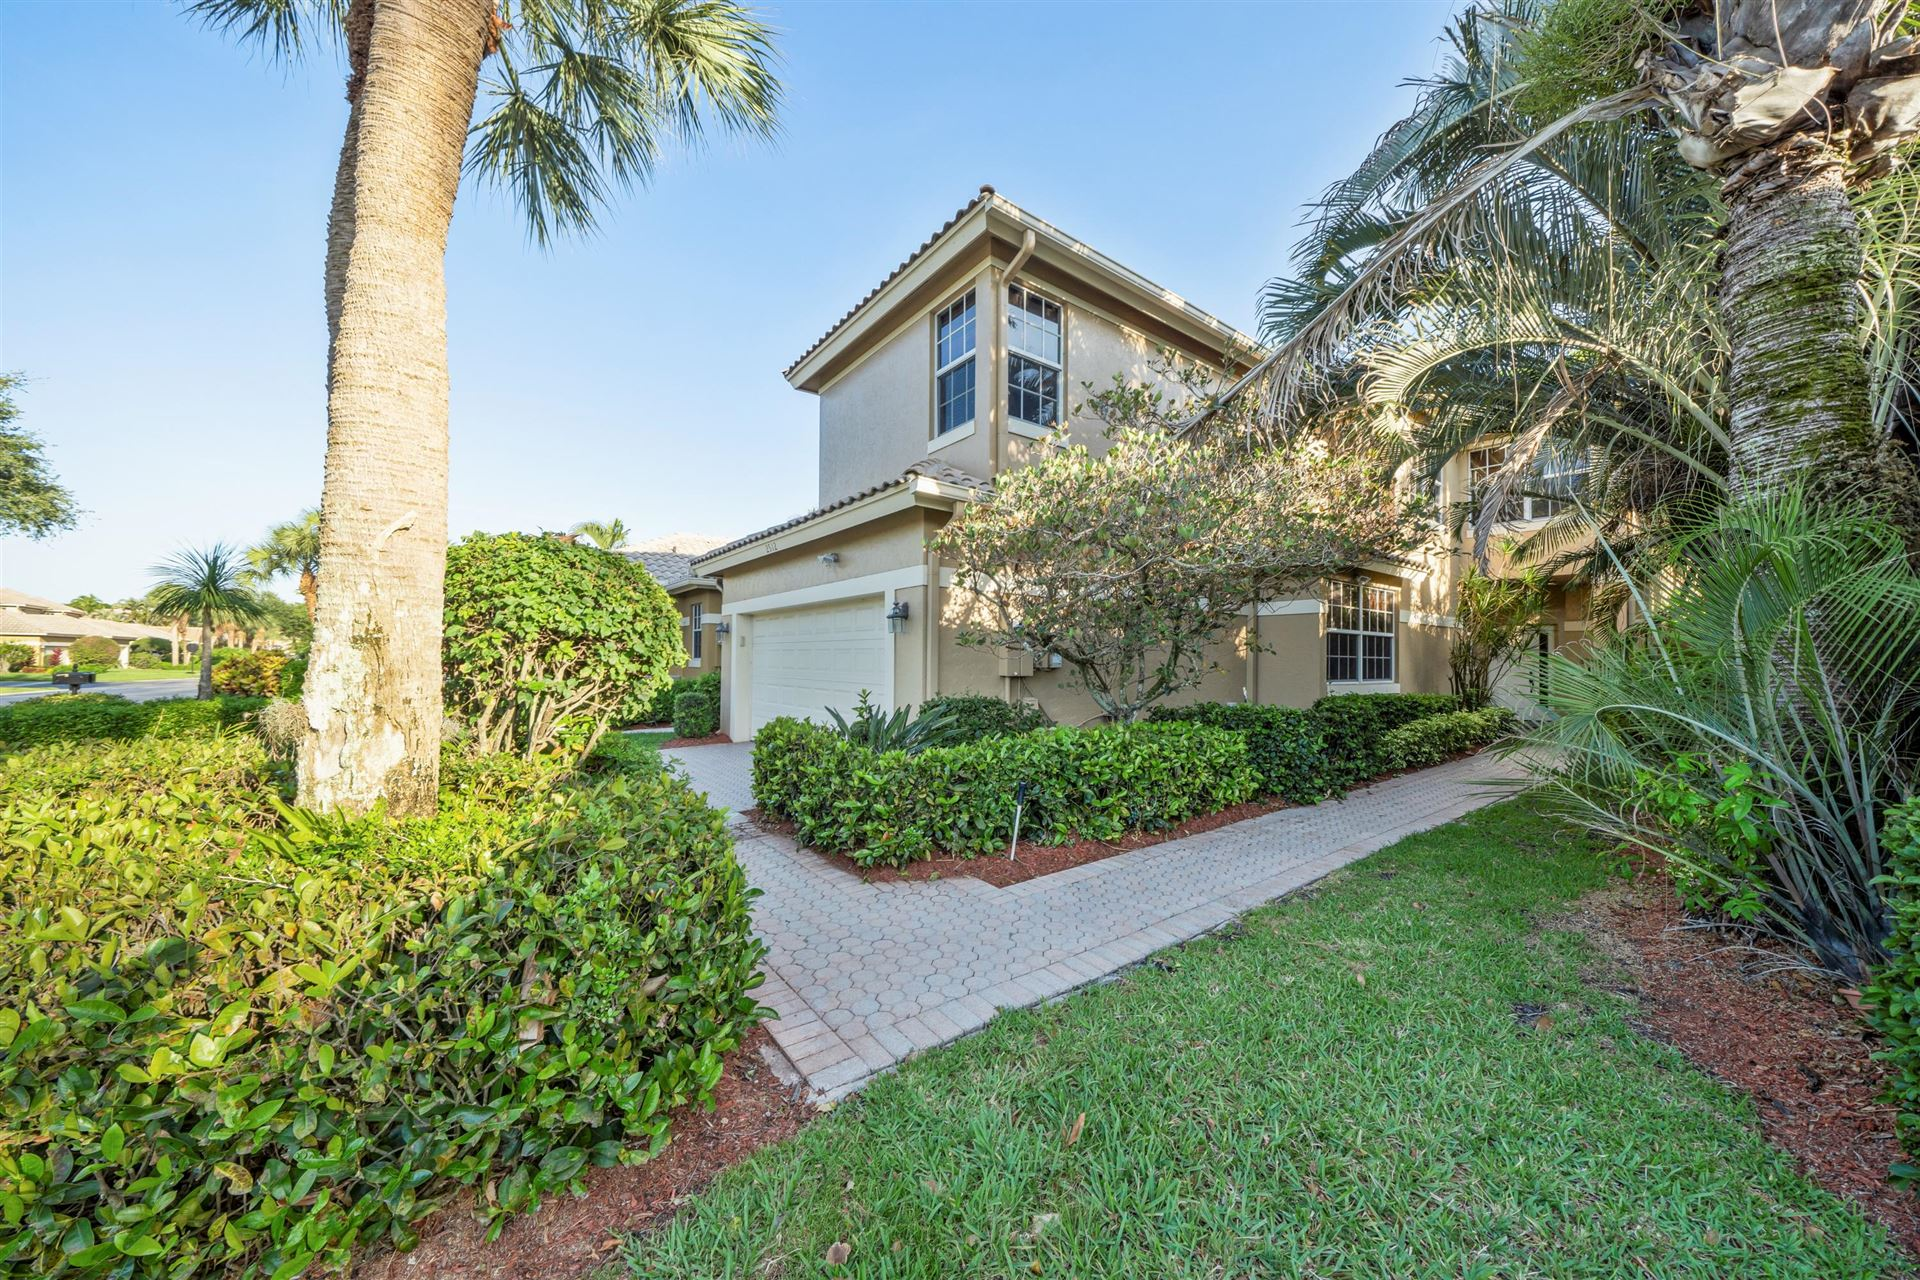 2512 NW 66th Drive, Boca Raton, FL 33496 - MLS#: RX-10713765